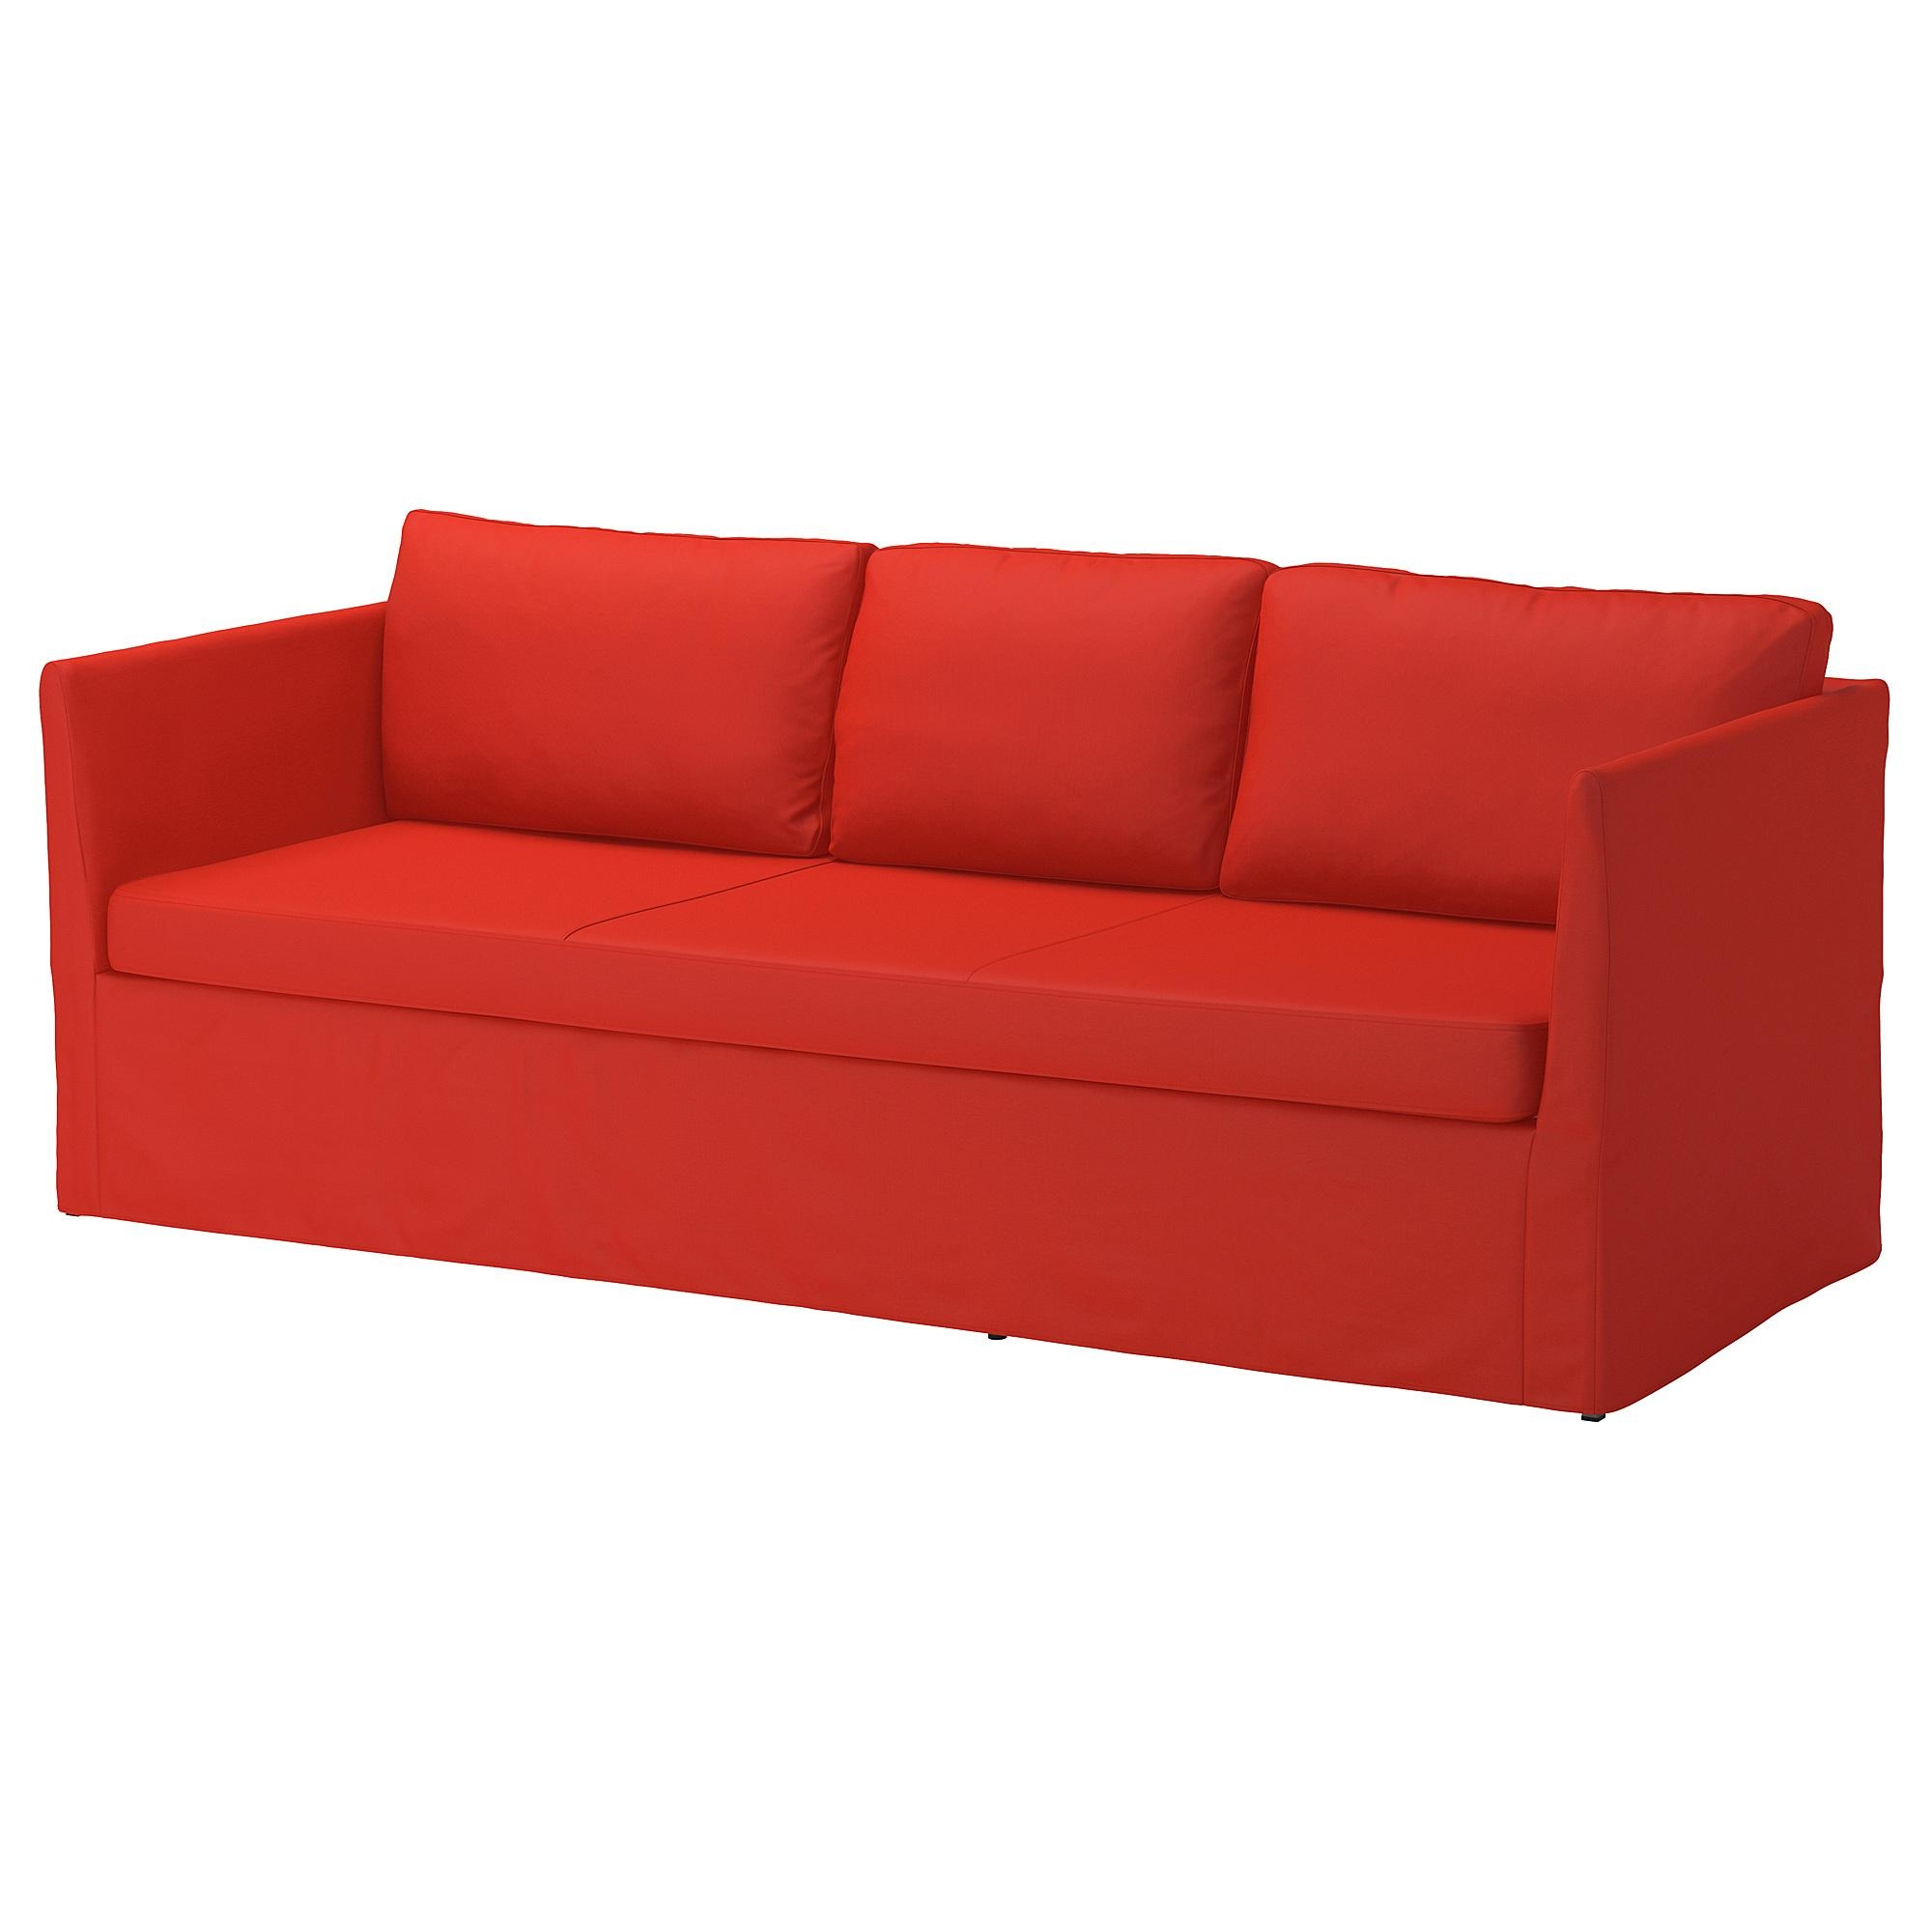 Bråthult 3 Seat Sofa Vissle Red/orange – Ikea For Orange Ikea Sofas (View 11 of 20)